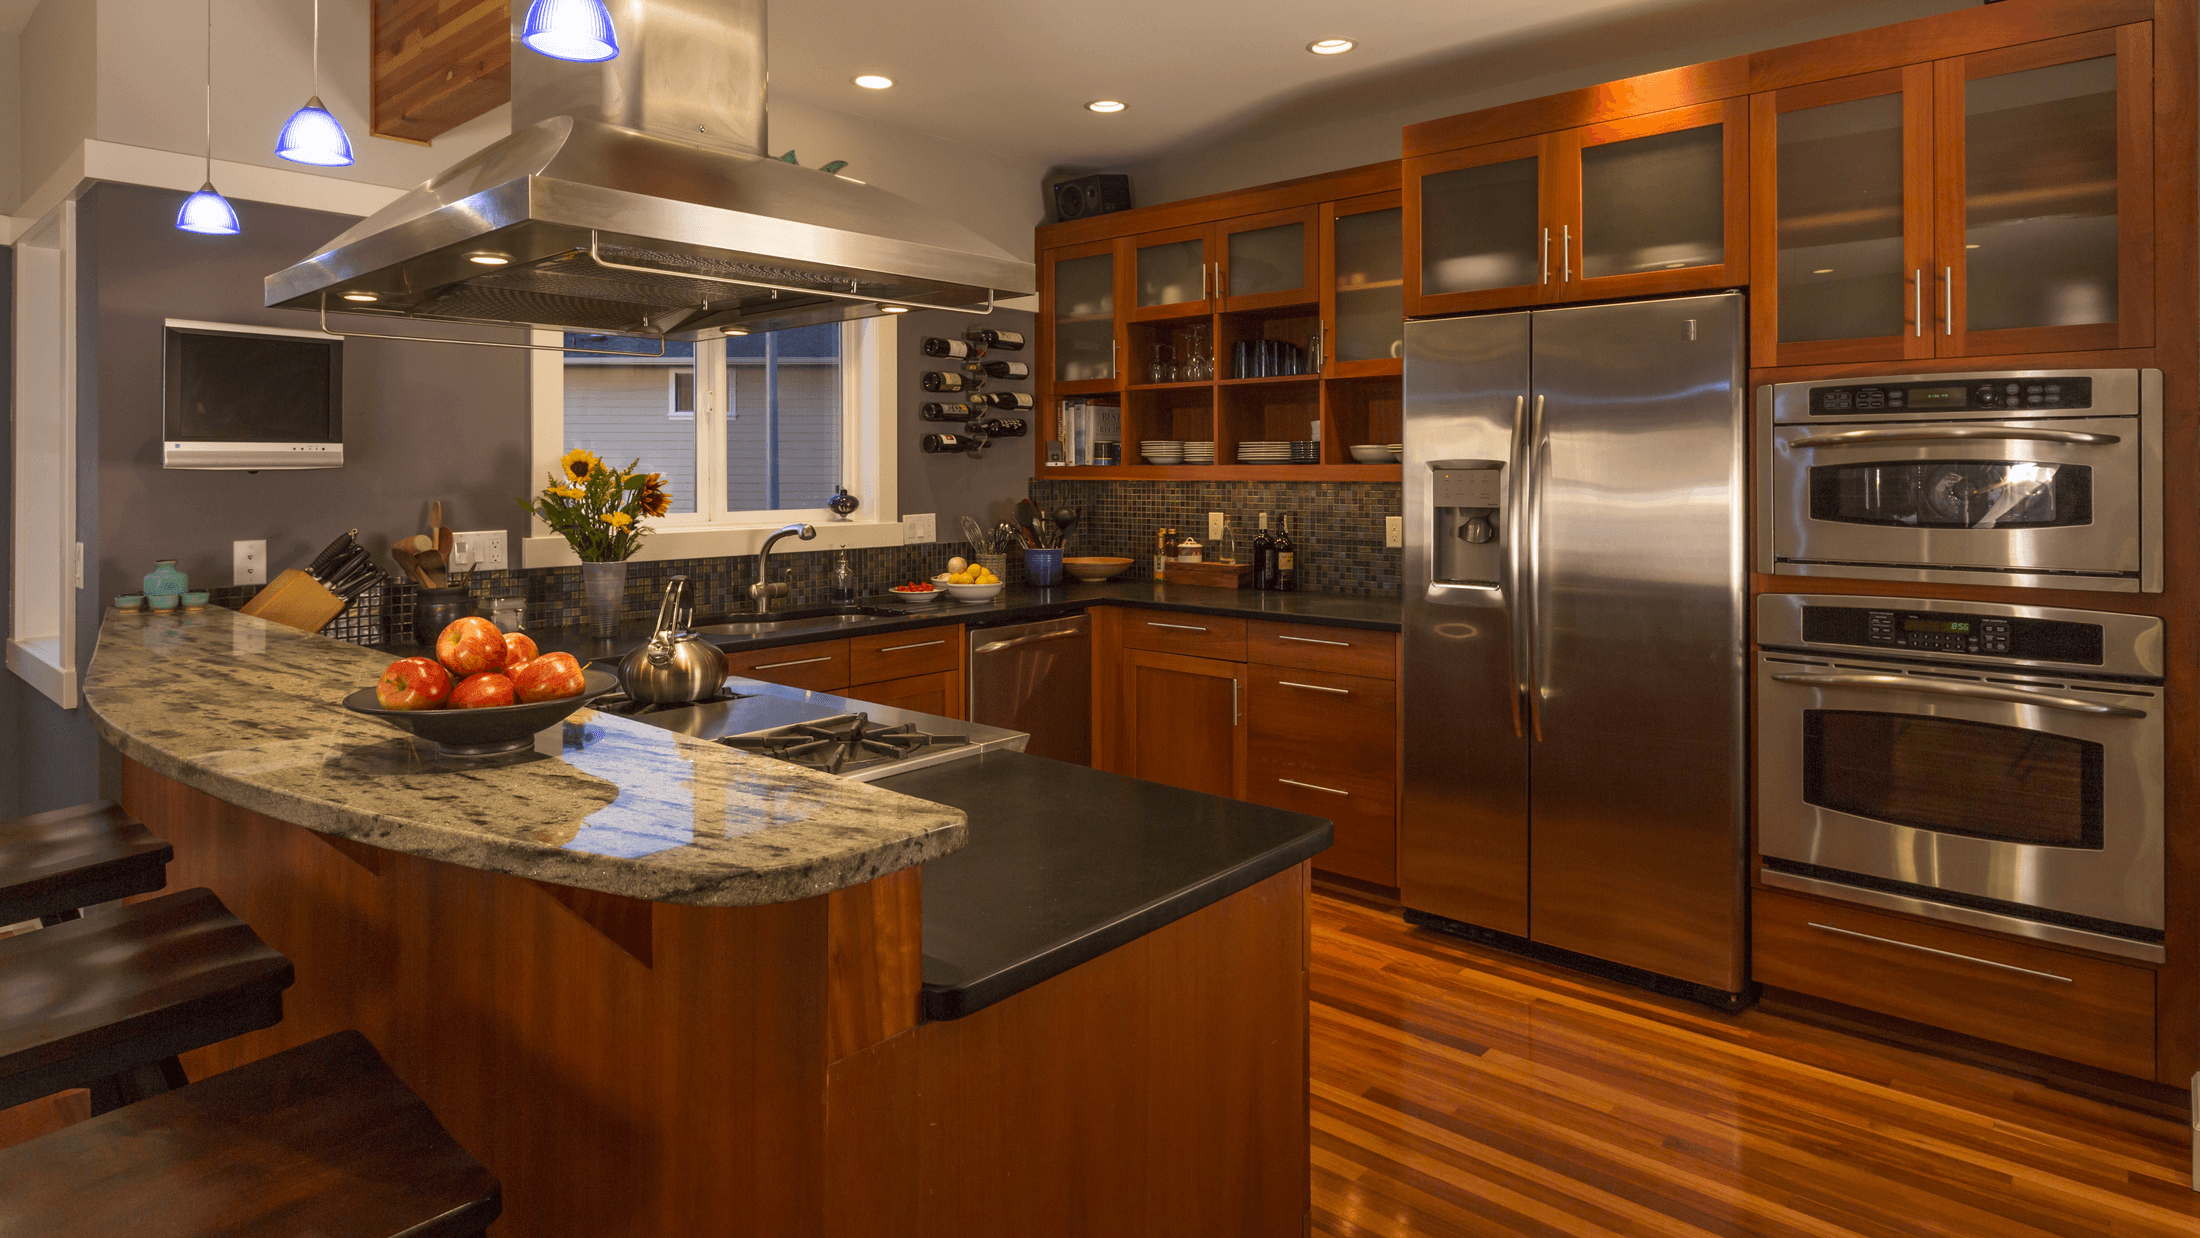 How To Match Your Kitchen Appliances To Granite